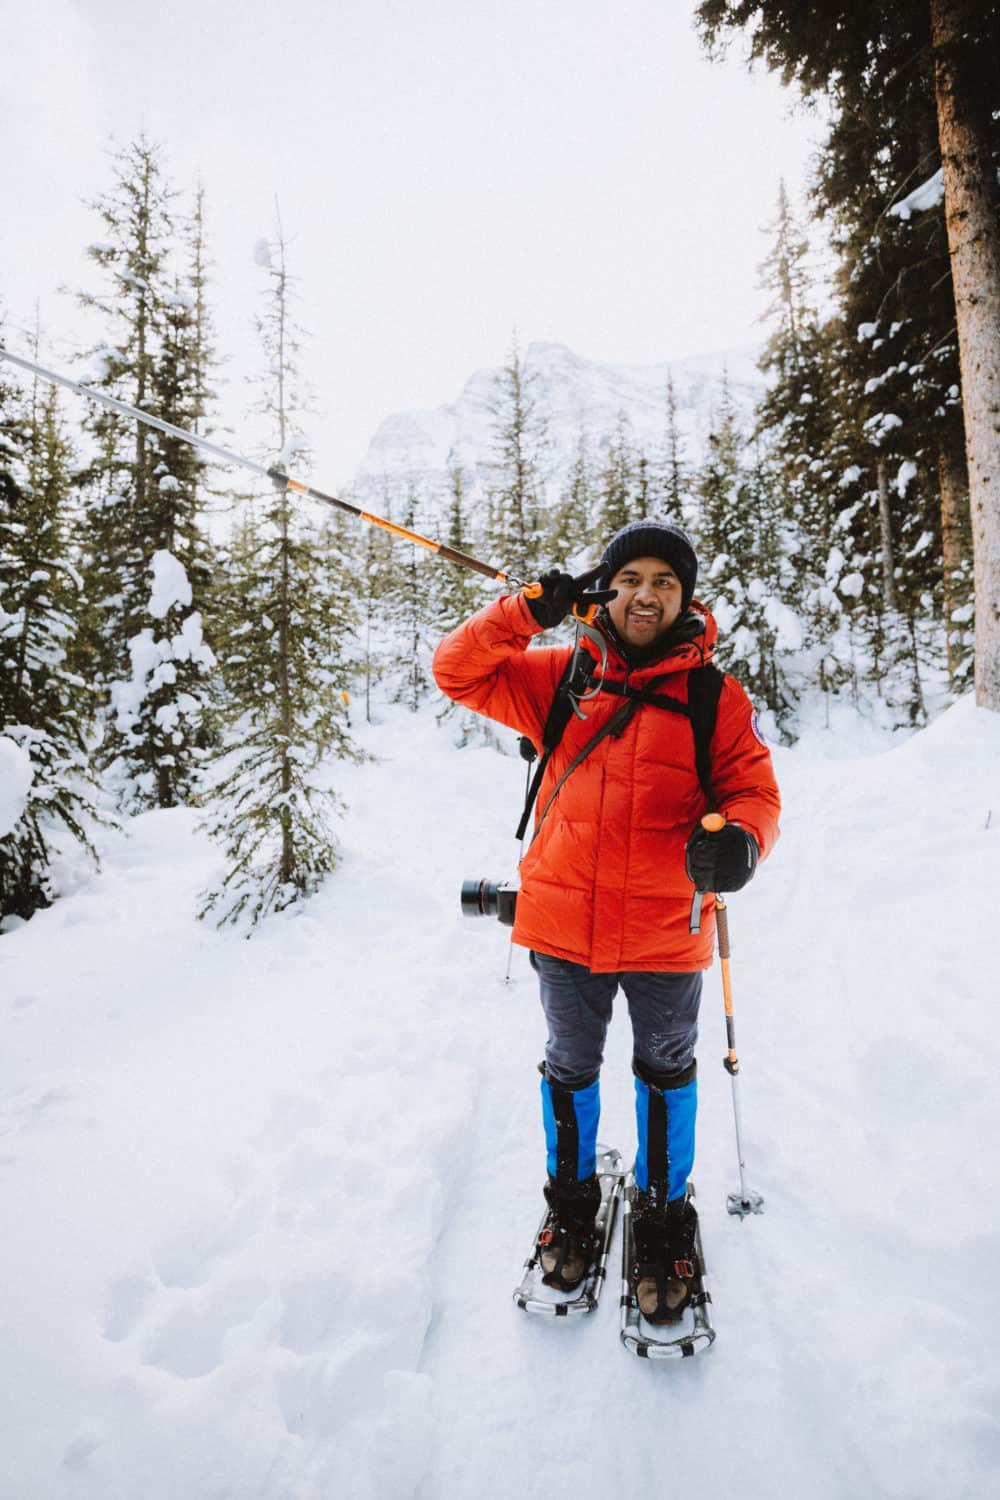 Berty in snowshoes, gaiters - Gear to pack for Banff in winter - TheMandagies.com